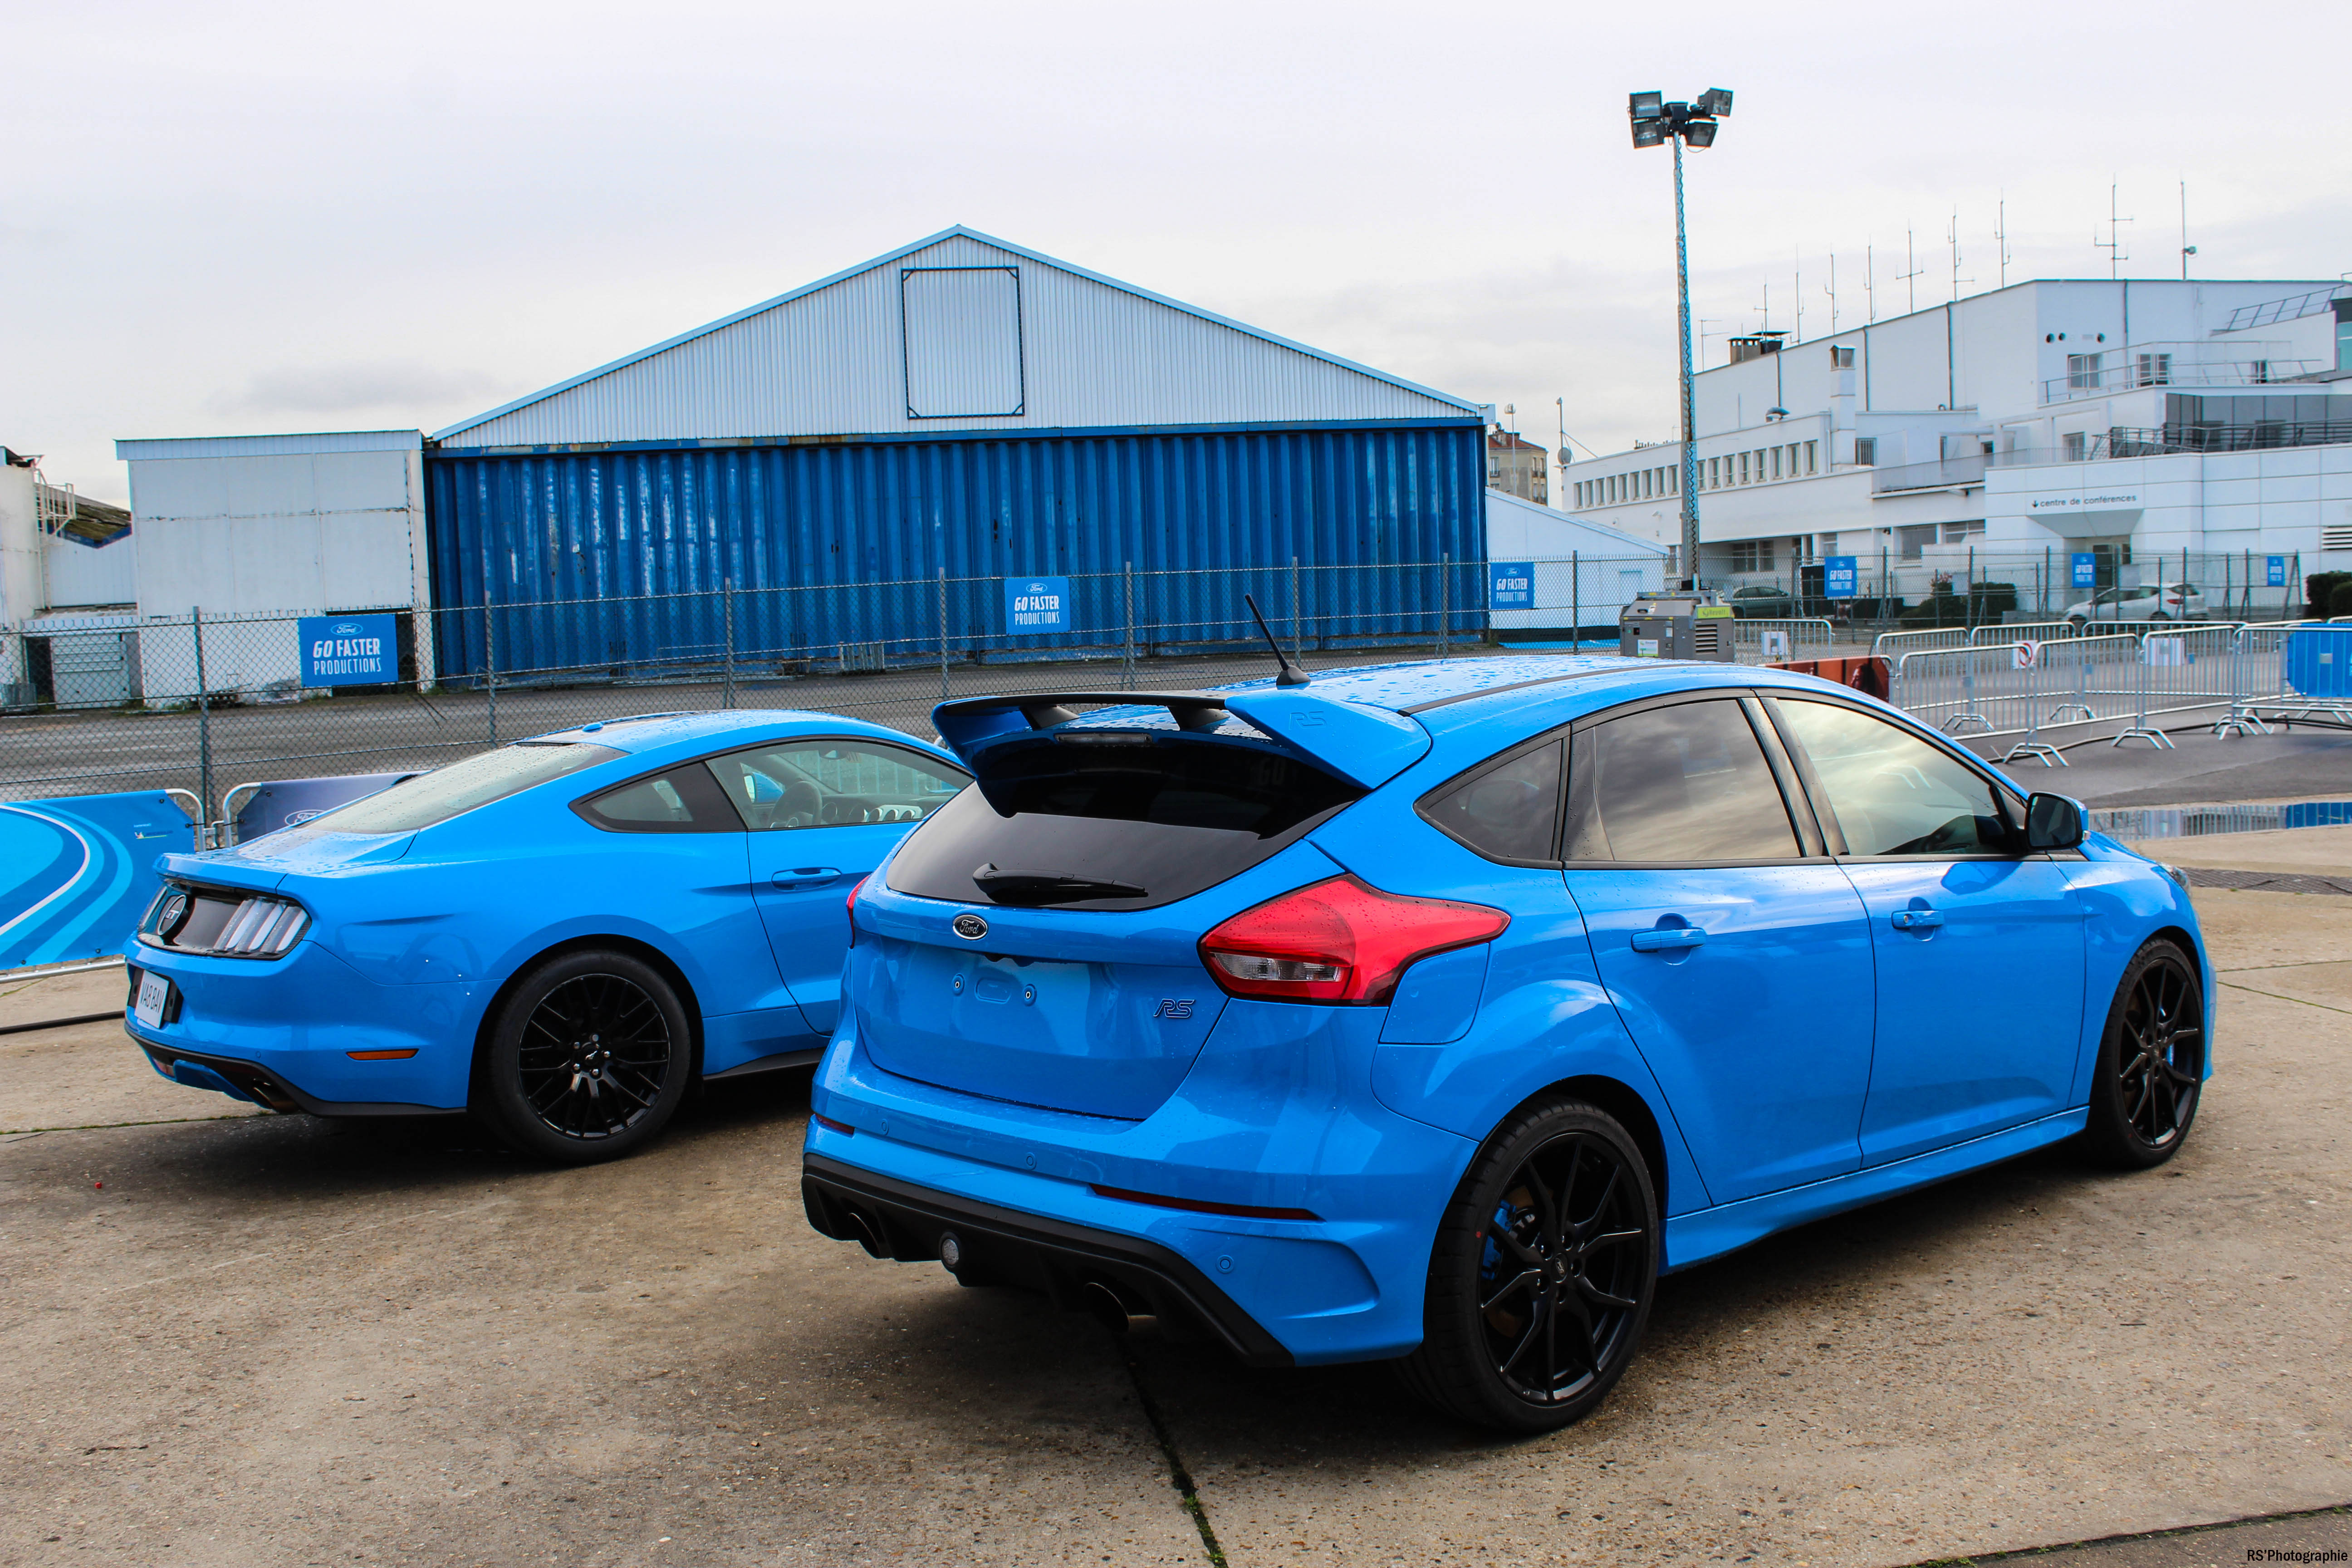 gofaster4-opération-go-faster-focus-rs-mustang-arrière-rear-Arnaud Demasier-RSPhotographie